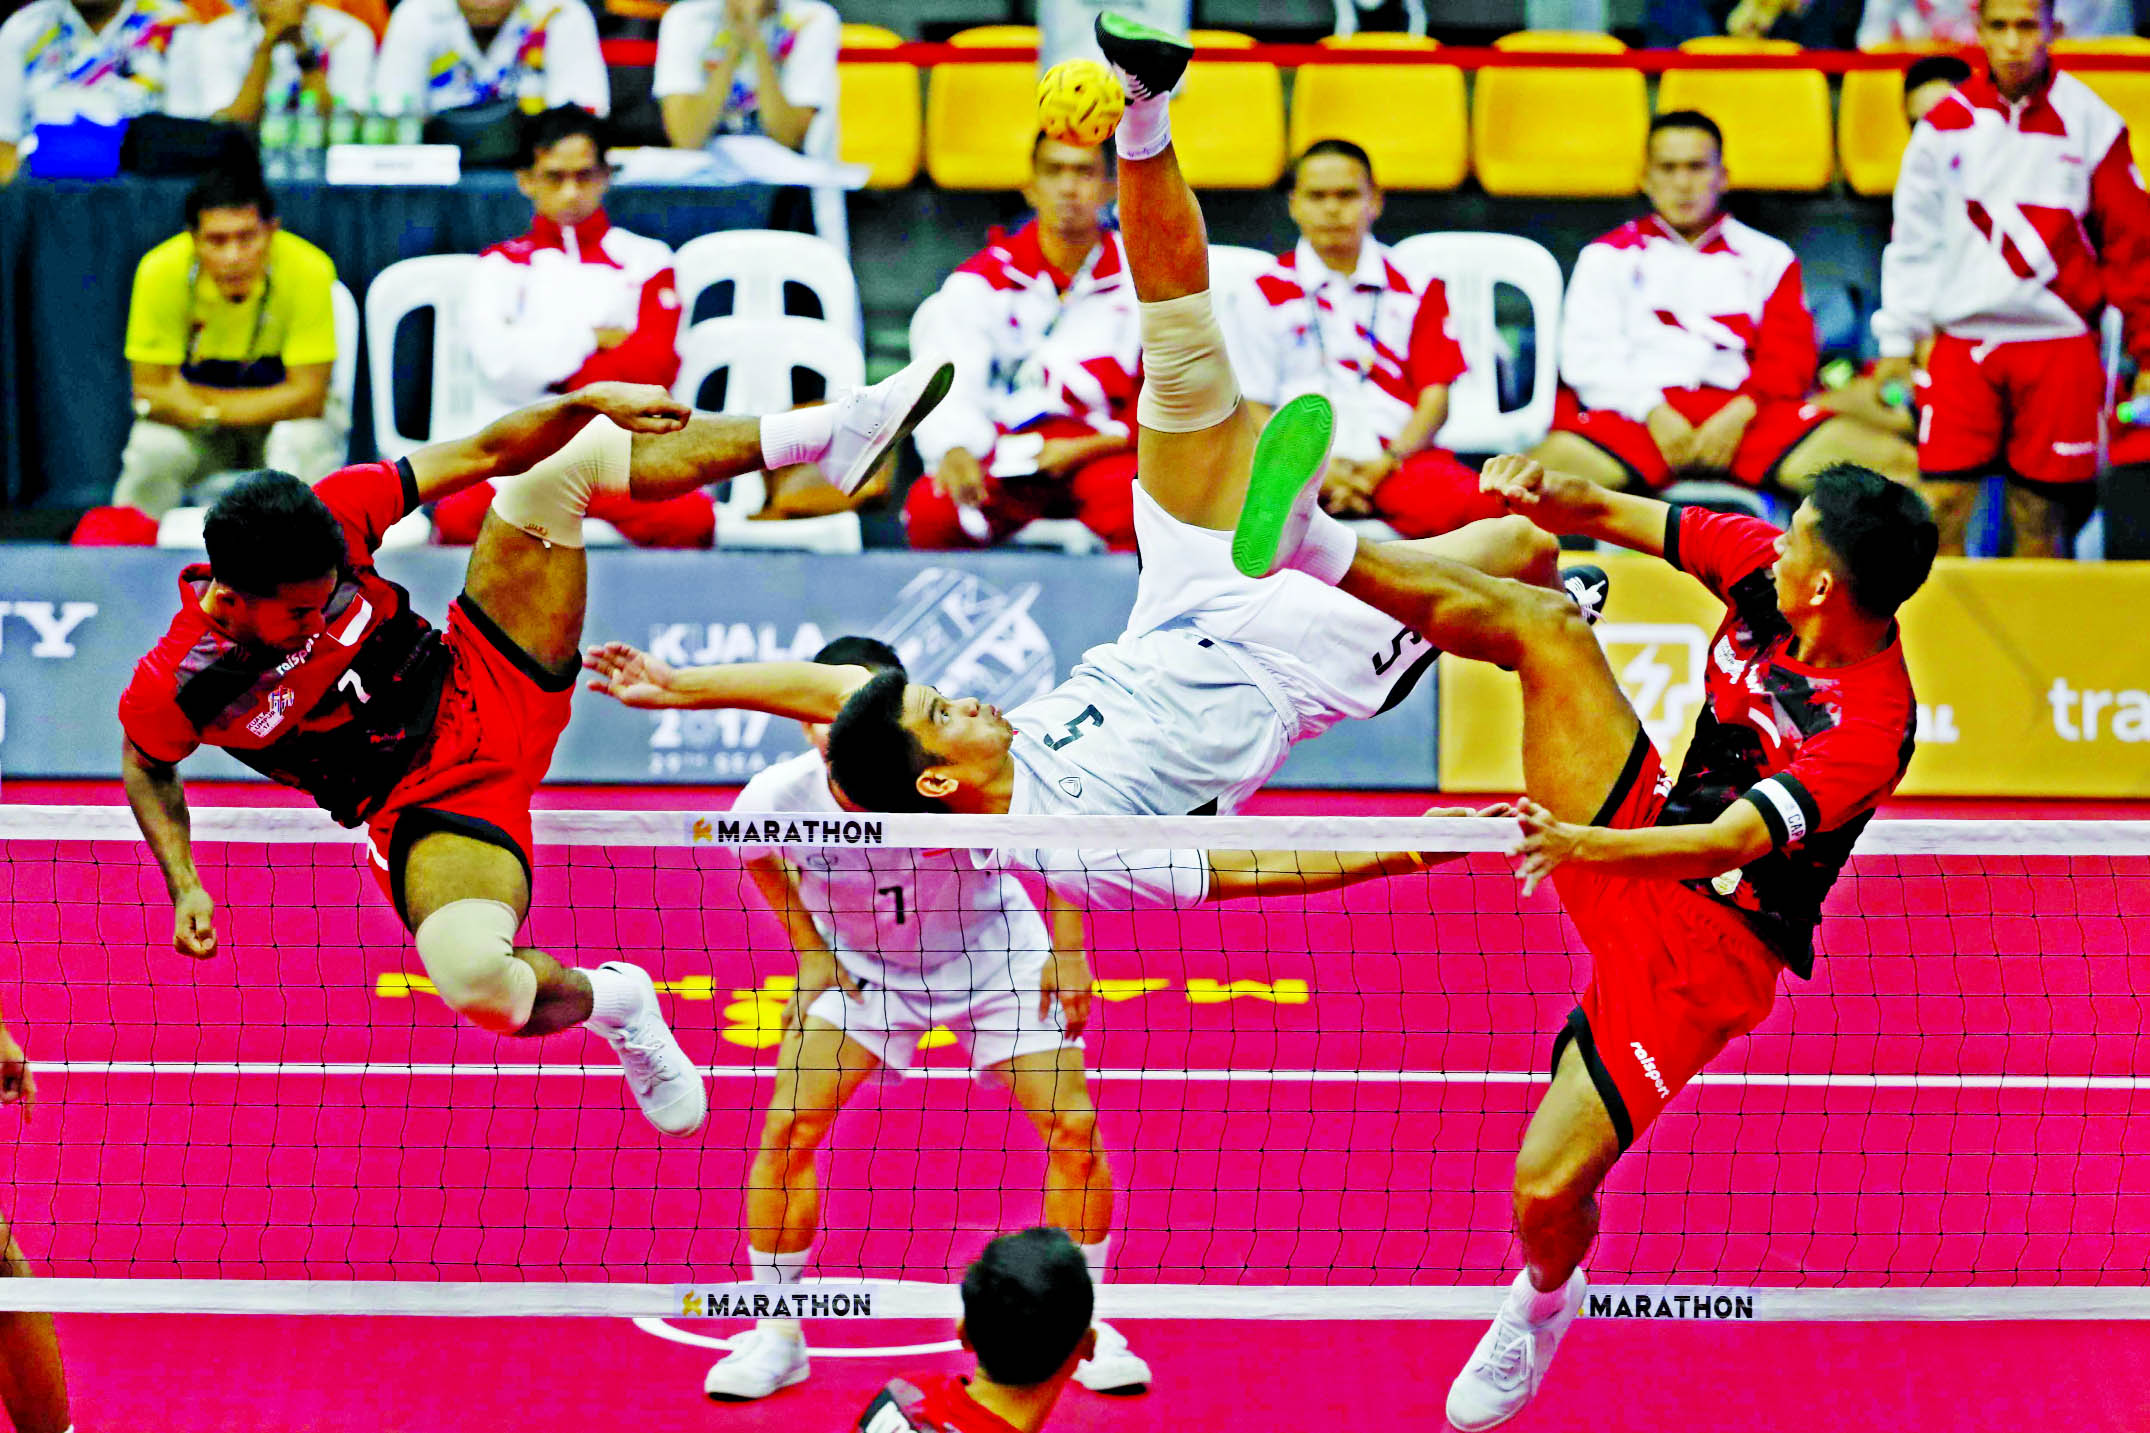 Thailand's Pornchai Kaokaew (center) kicks a ball against Indonesia's Saiful Rijai (left) and Syamsul Hadi during the men's Sepak Takraw Regu competition at South East Asian Games in Kuala Lumpur, Malaysia on Friday.